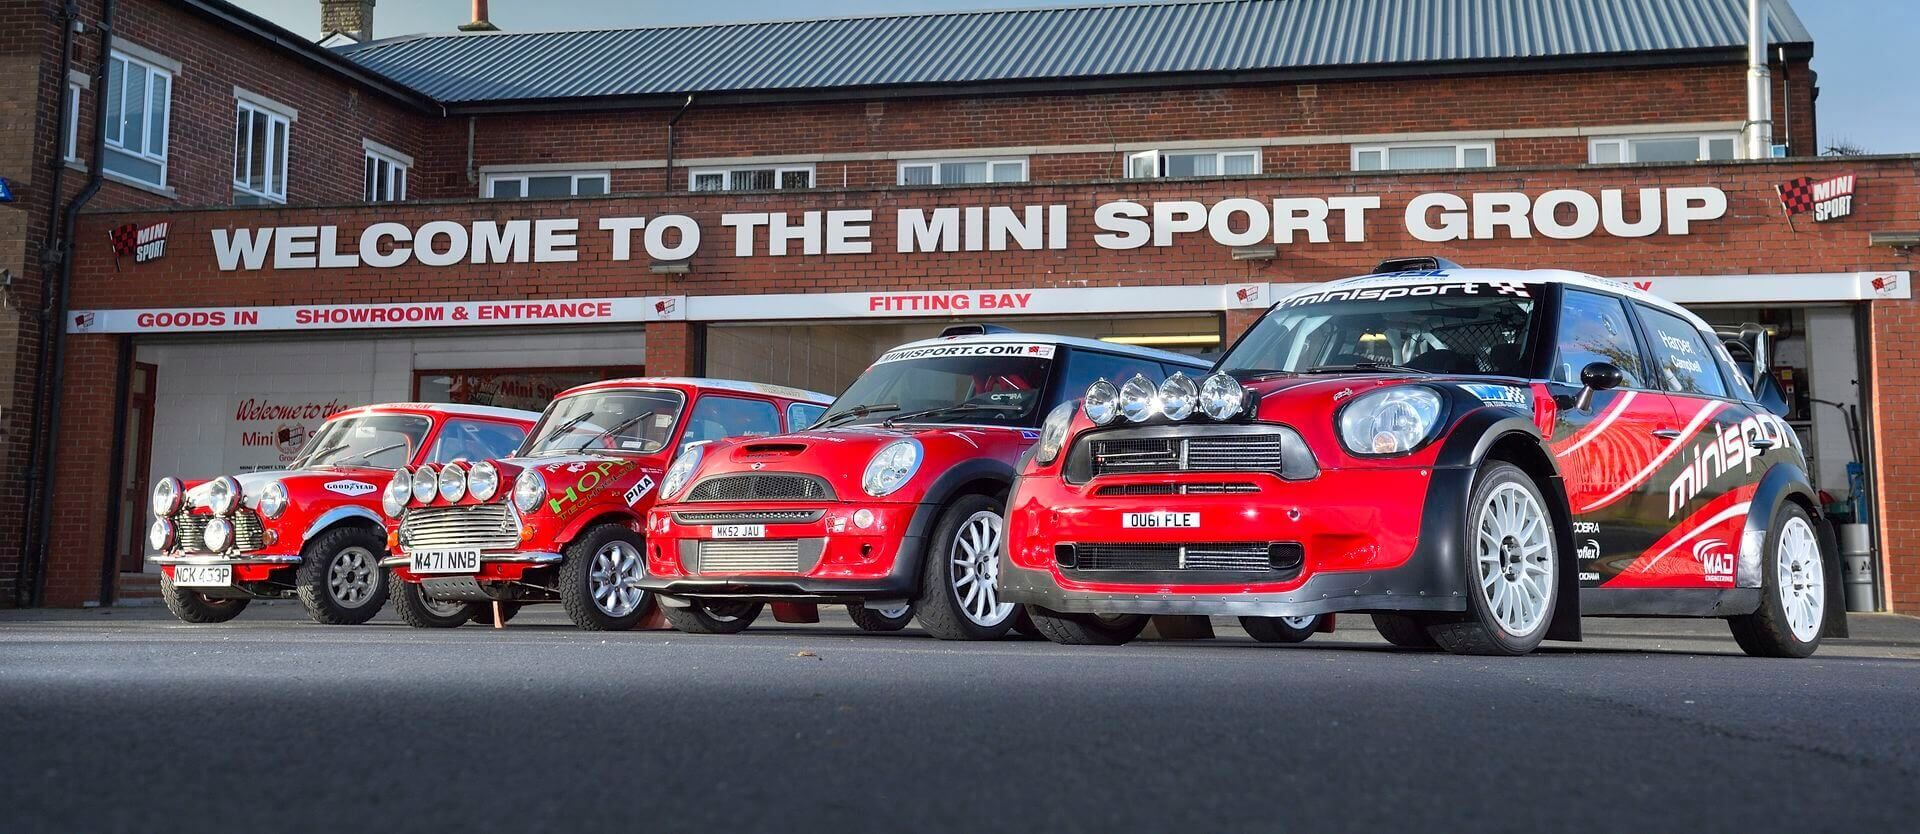 Welcome to Mini Sport